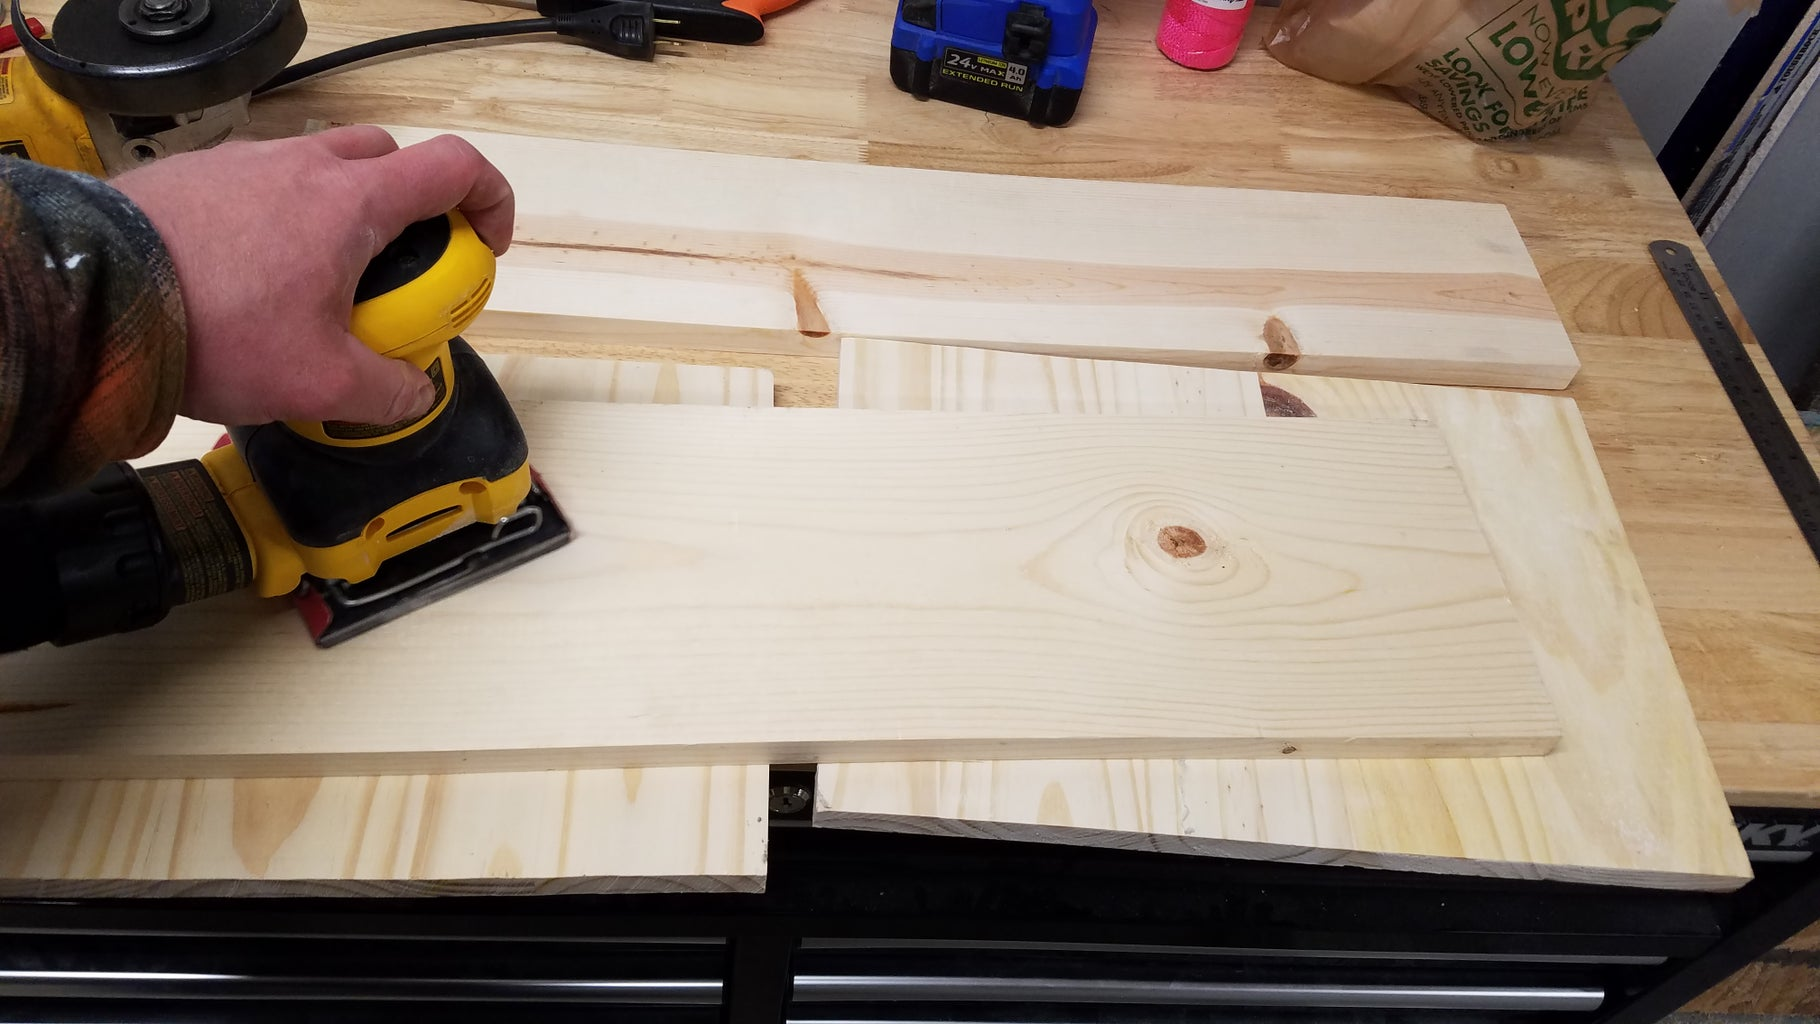 Getting Started: Wood and Metal Cutting